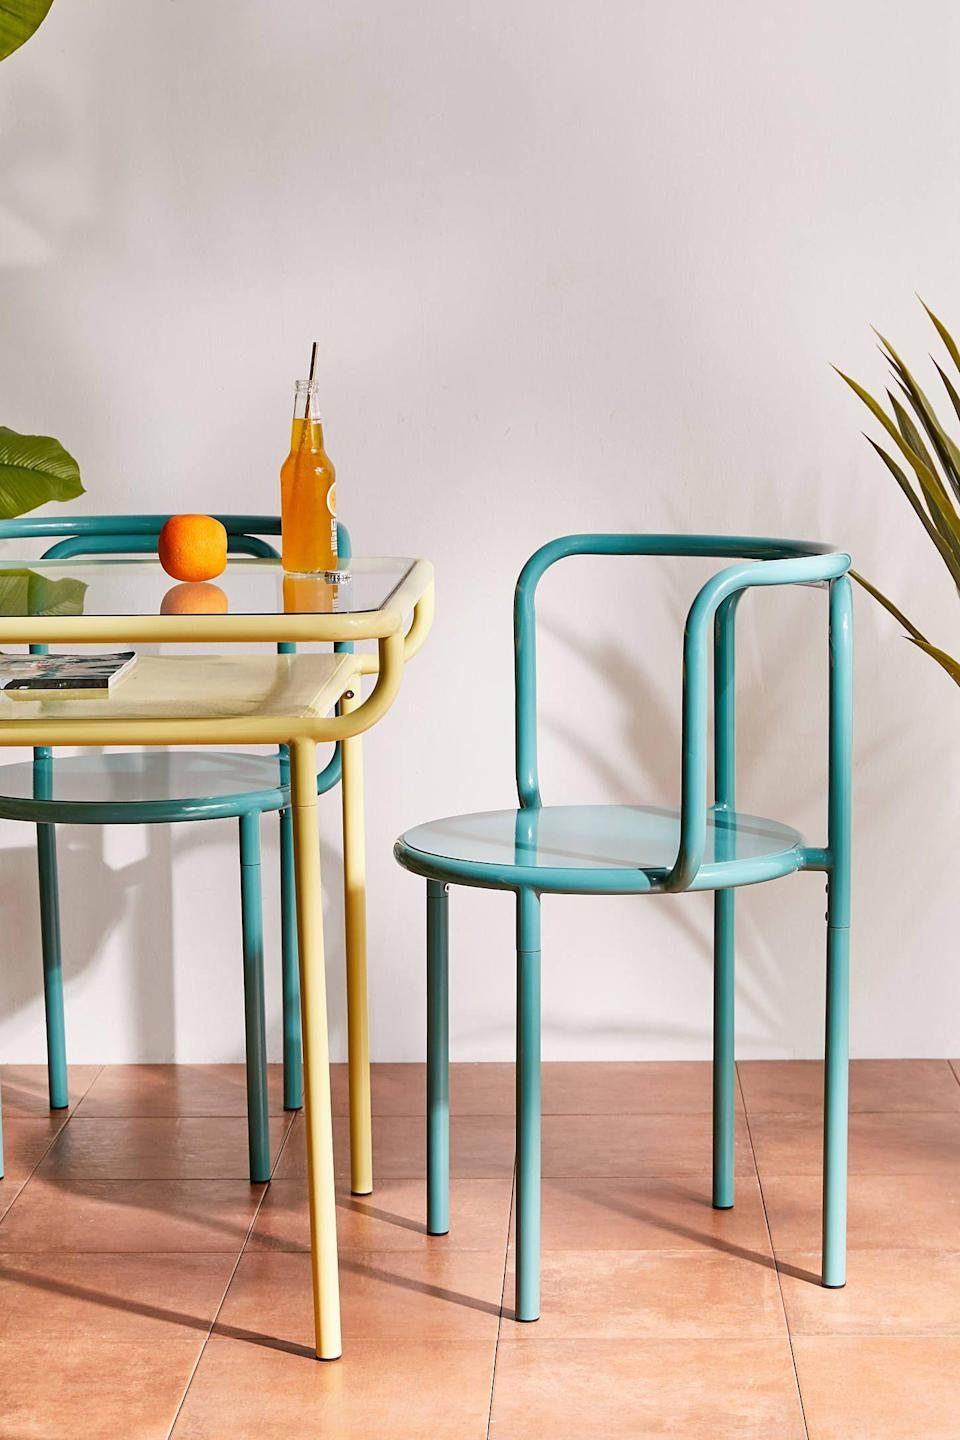 """<p><strong>Urban Outfitters</strong></p><p>urbanoutfitters.com</p><p><strong>$139.00</strong></p><p><a href=""""https://go.redirectingat.com?id=74968X1596630&url=https%3A%2F%2Fwww.urbanoutfitters.com%2Fshop%2Frhys-outdoor-dining-chair&sref=https%3A%2F%2Fwww.goodhousekeeping.com%2Fhome-products%2Fg32743125%2Fbest-patio-chairs%2F"""" rel=""""nofollow noopener"""" target=""""_blank"""" data-ylk=""""slk:Shop Now"""" class=""""link rapid-noclick-resp"""">Shop Now</a></p><p>Count on this sturdy metal patio chair to withstand the elements <em>and</em> add a bold touch to your space. </p>"""